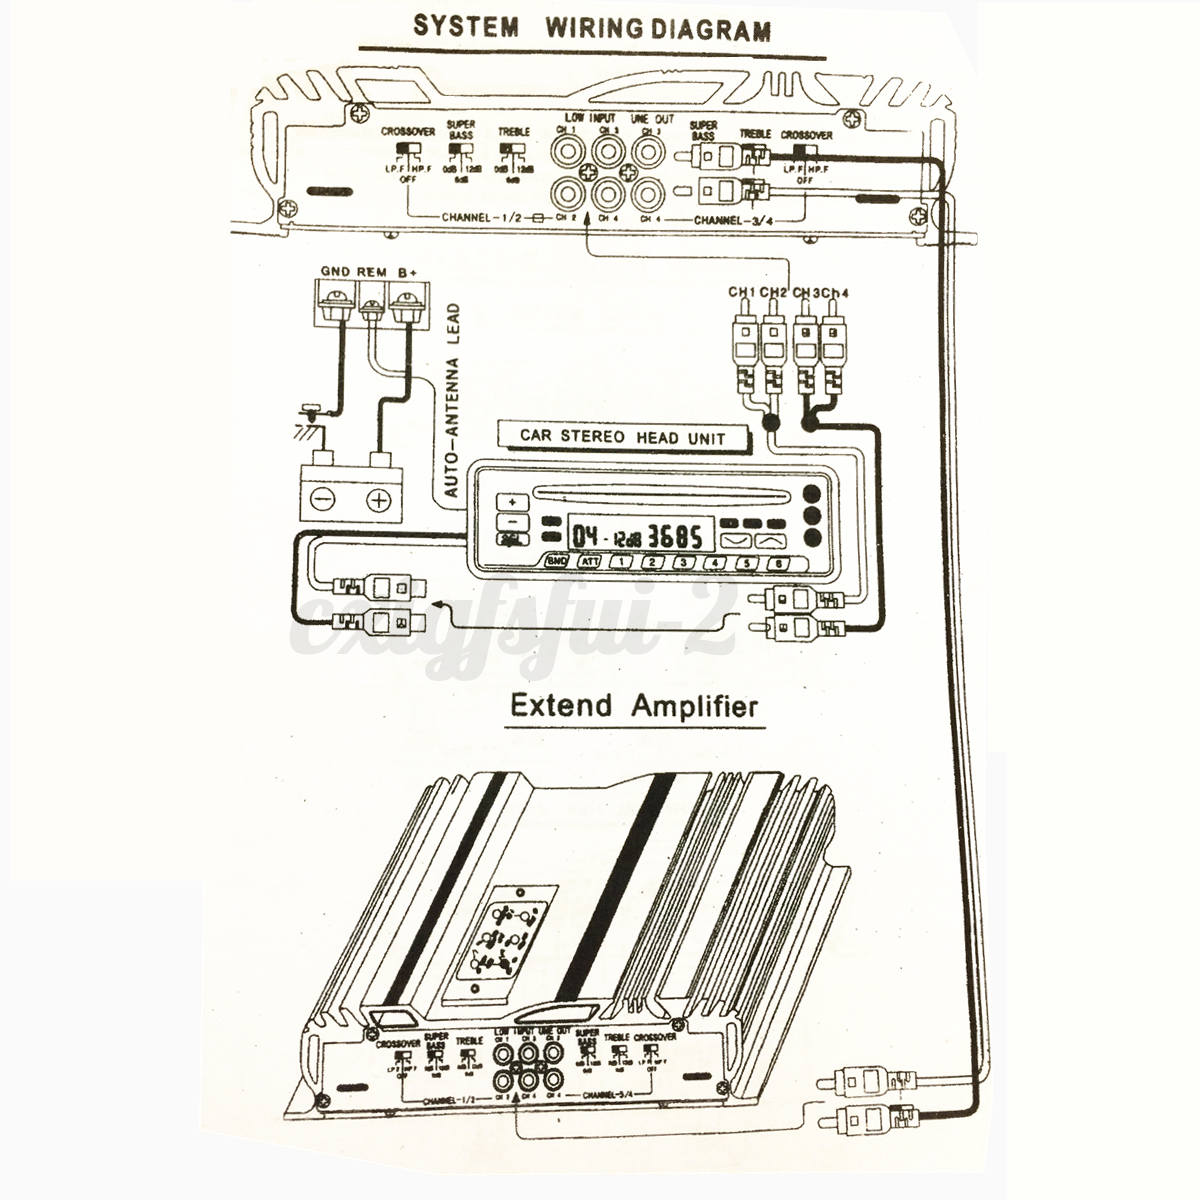 2 channel car amp wiring diagram electricity diagrams v12 705 12v rms 4 ch audio power stereo 3800